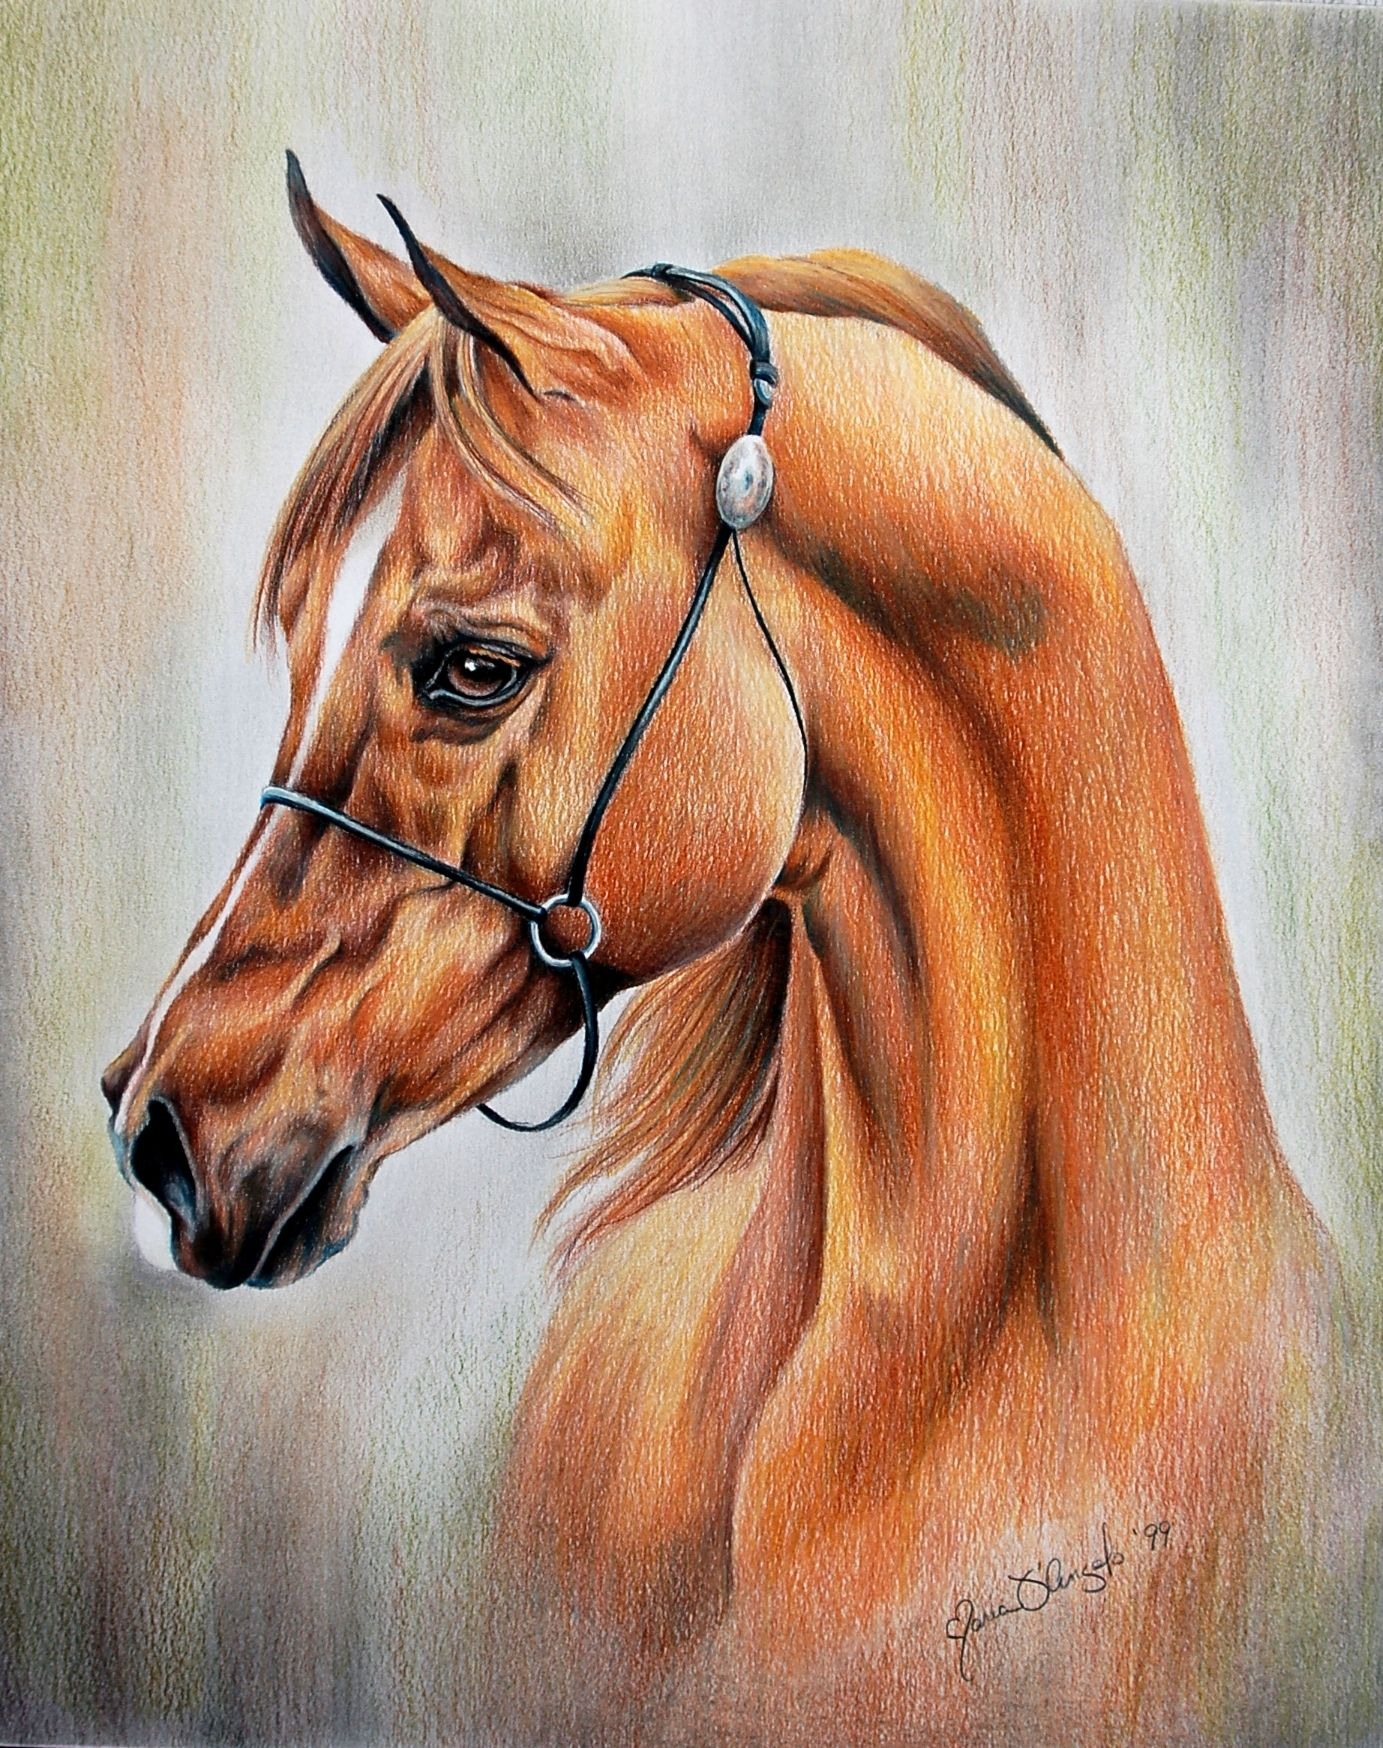 Full Body Horse Drawing : horse, drawing, White, Mountain, Womens, Ankle, Strap, Dress, Sandals, Walmart.com, Arabian, Horse, Painting,, Artwork